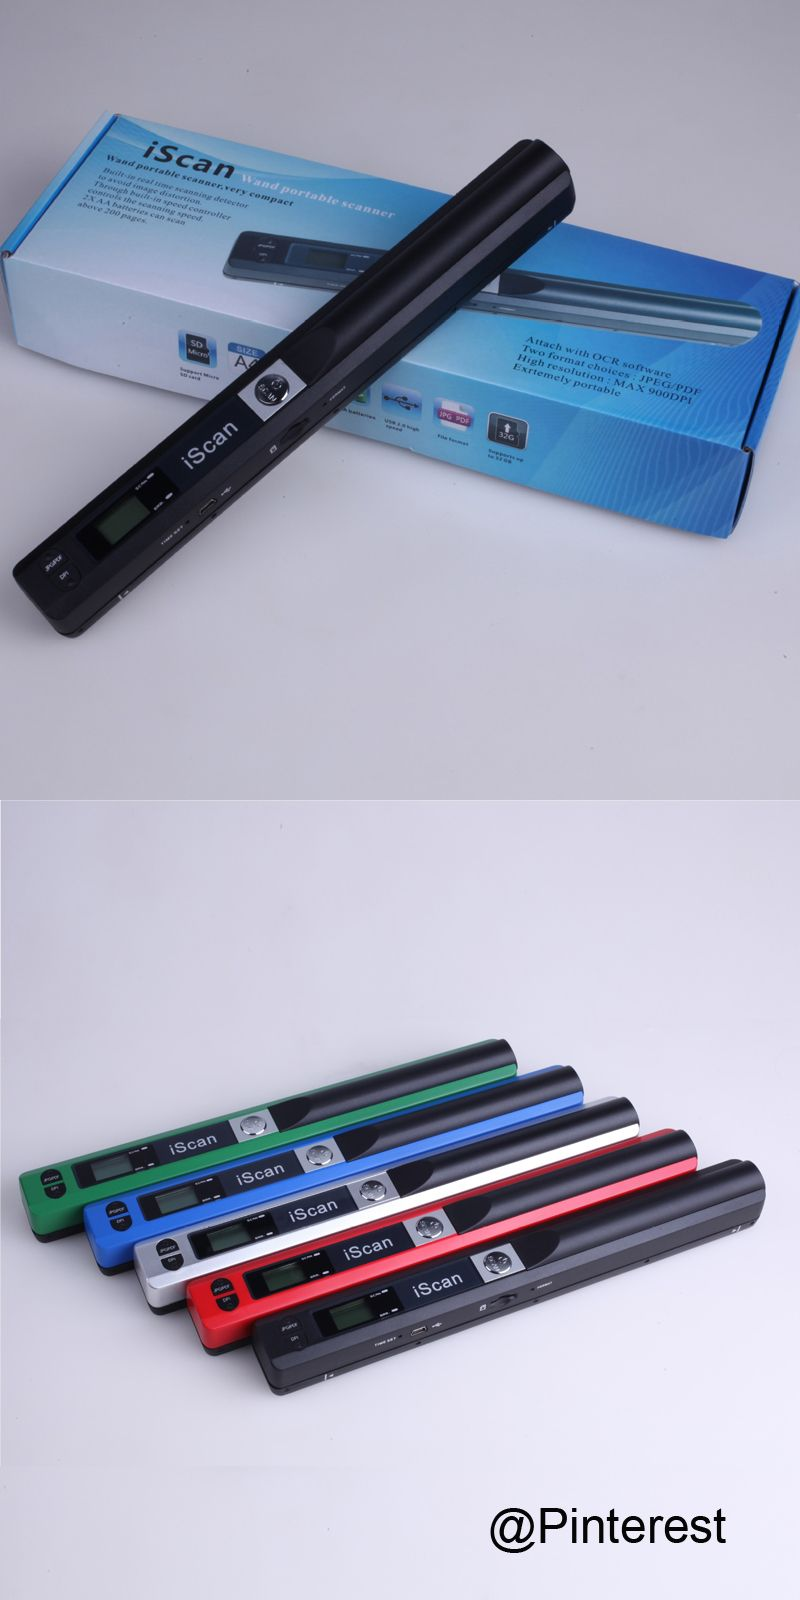 Iscan01 Hd Portable Scanner 900dpi A4 Color Handheld Mini New